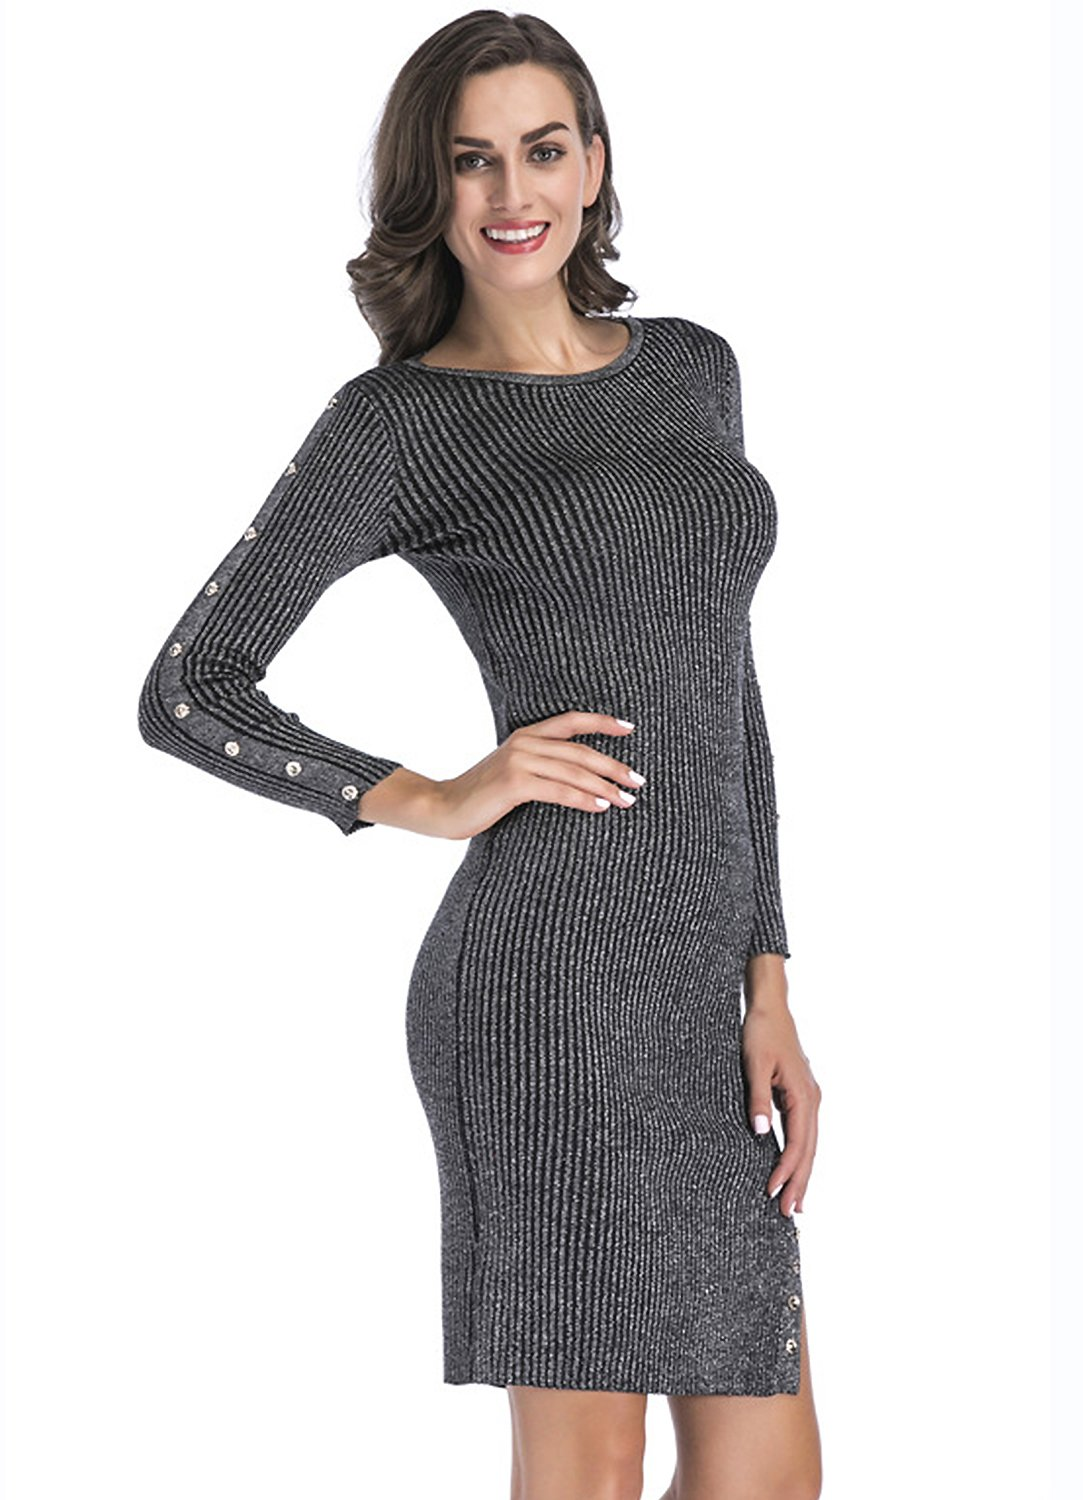 Ribbed Sweater Split Dress For Women - Slim Fit Knit Stretchable Long Sleeve Gray XL Plus Size Slit